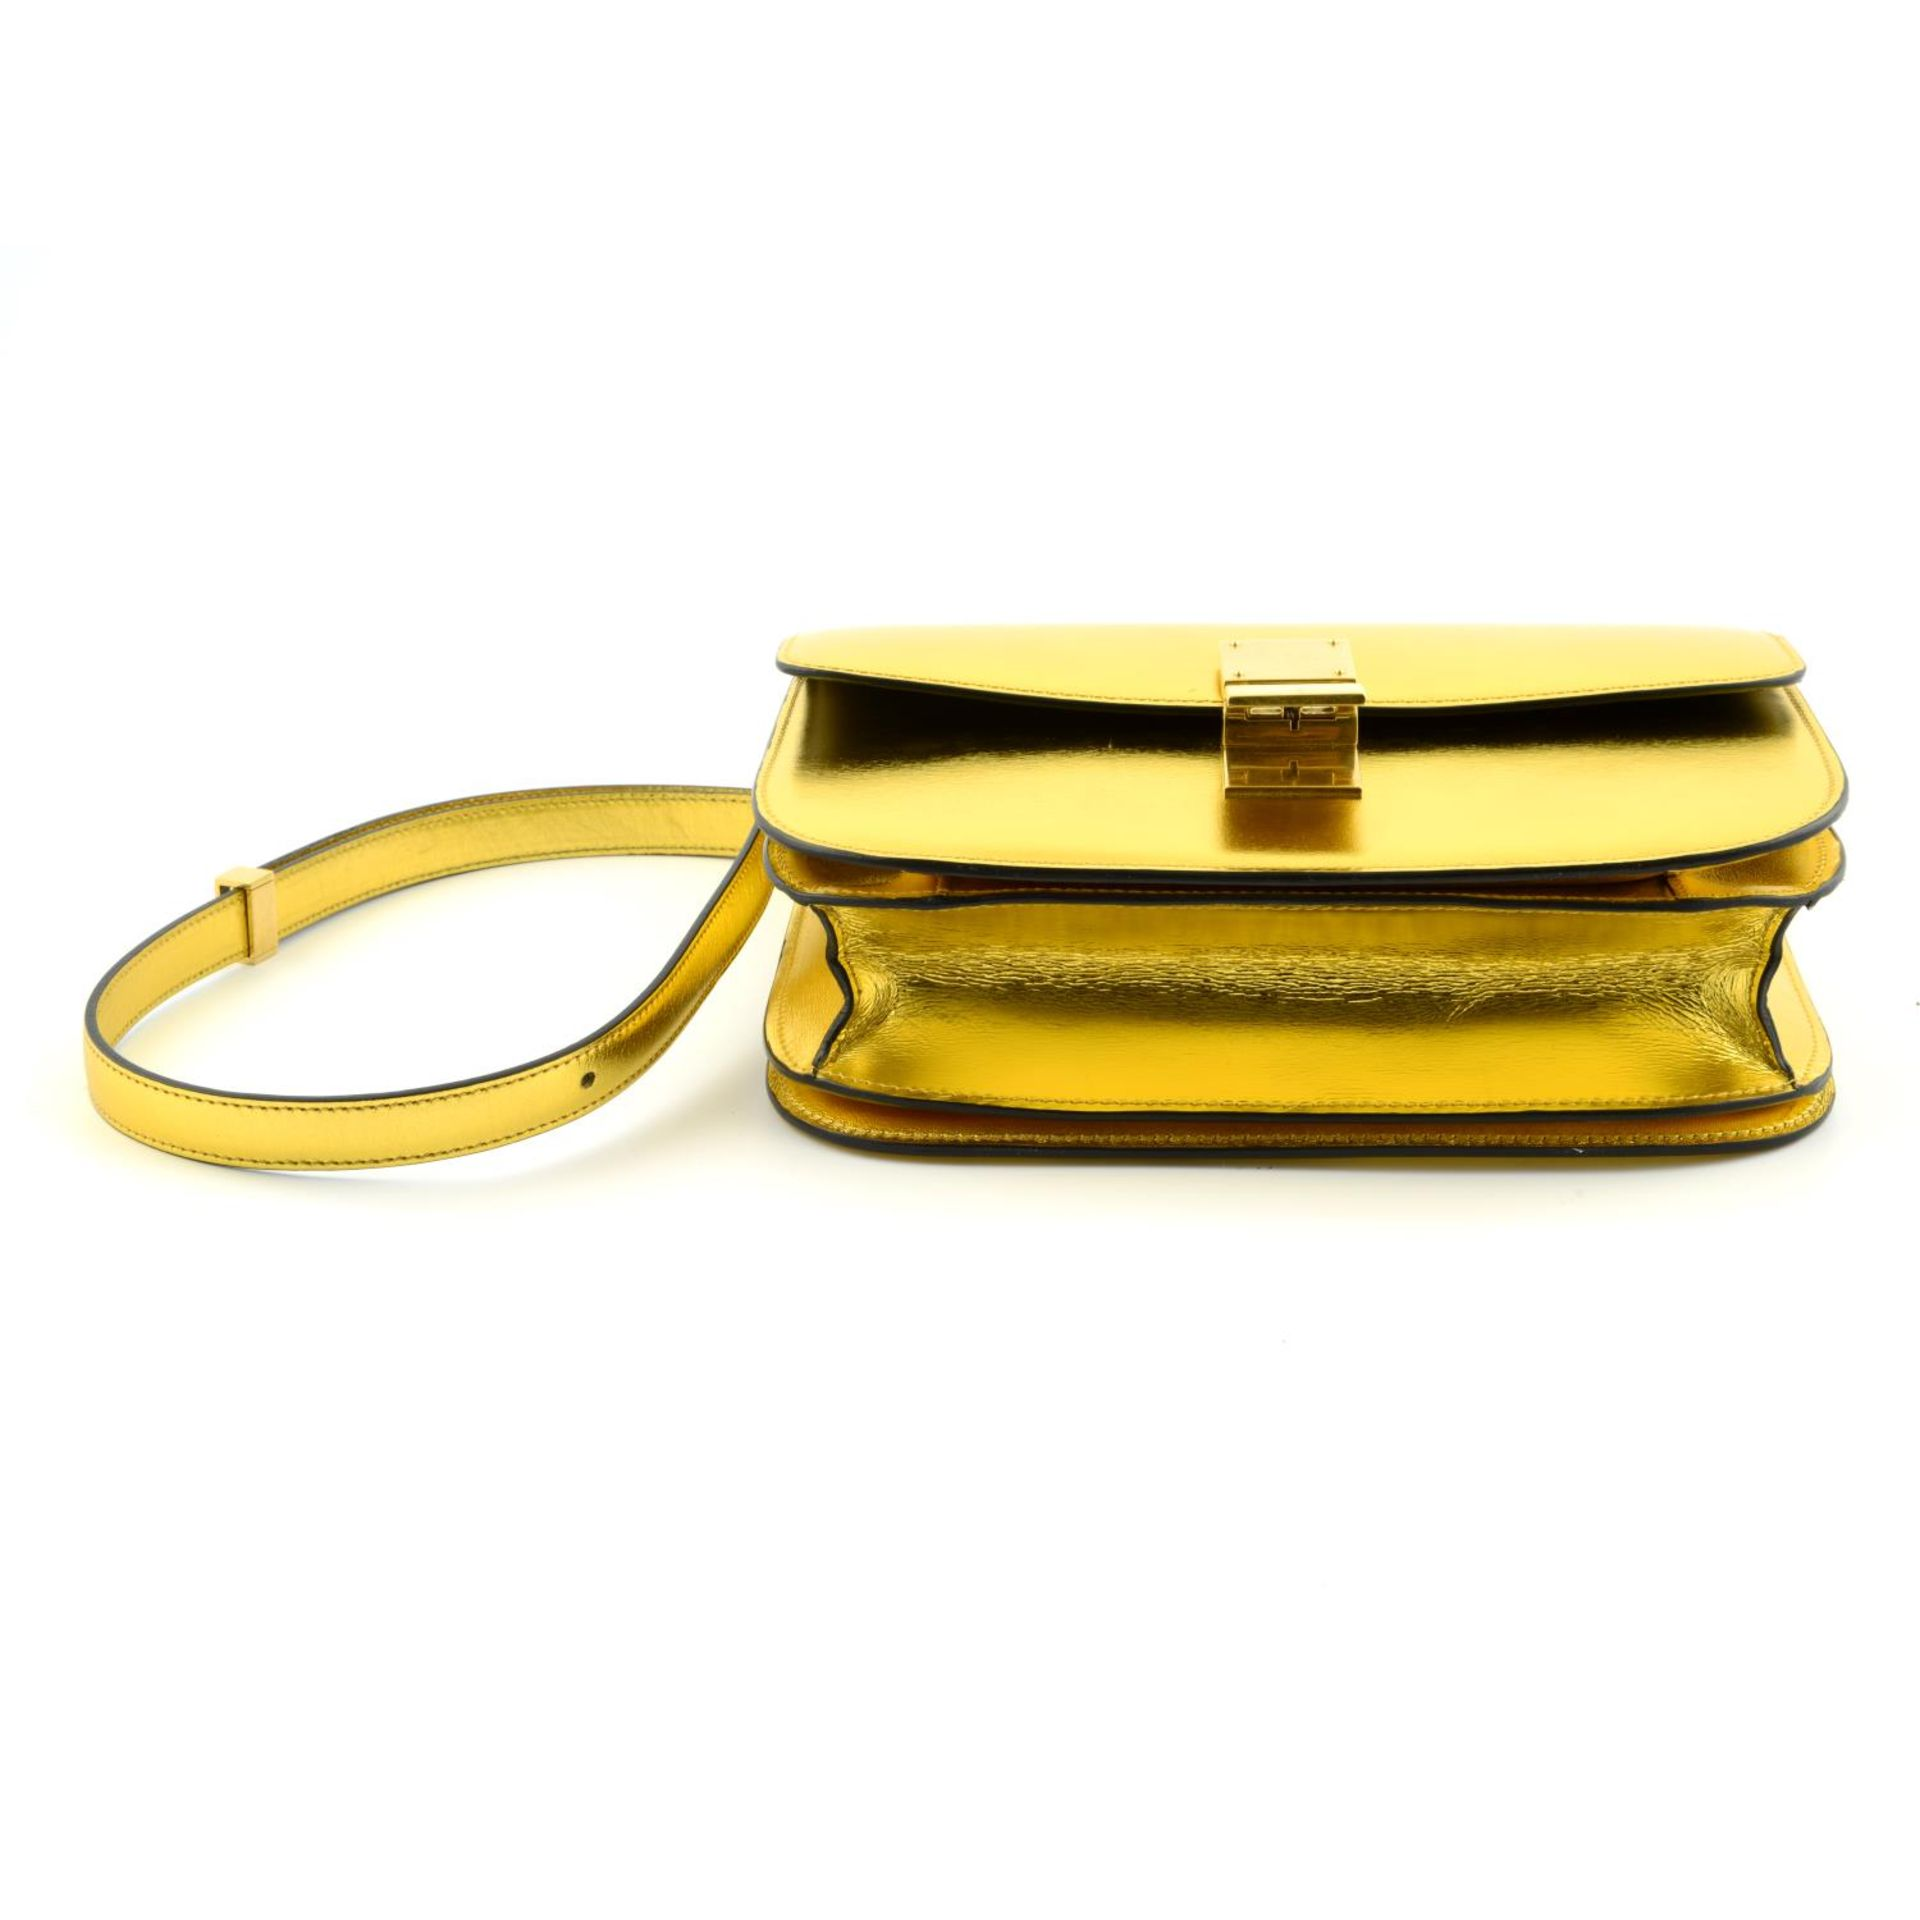 CÉLINE - a metallic gold Box handbag. - Image 5 of 9